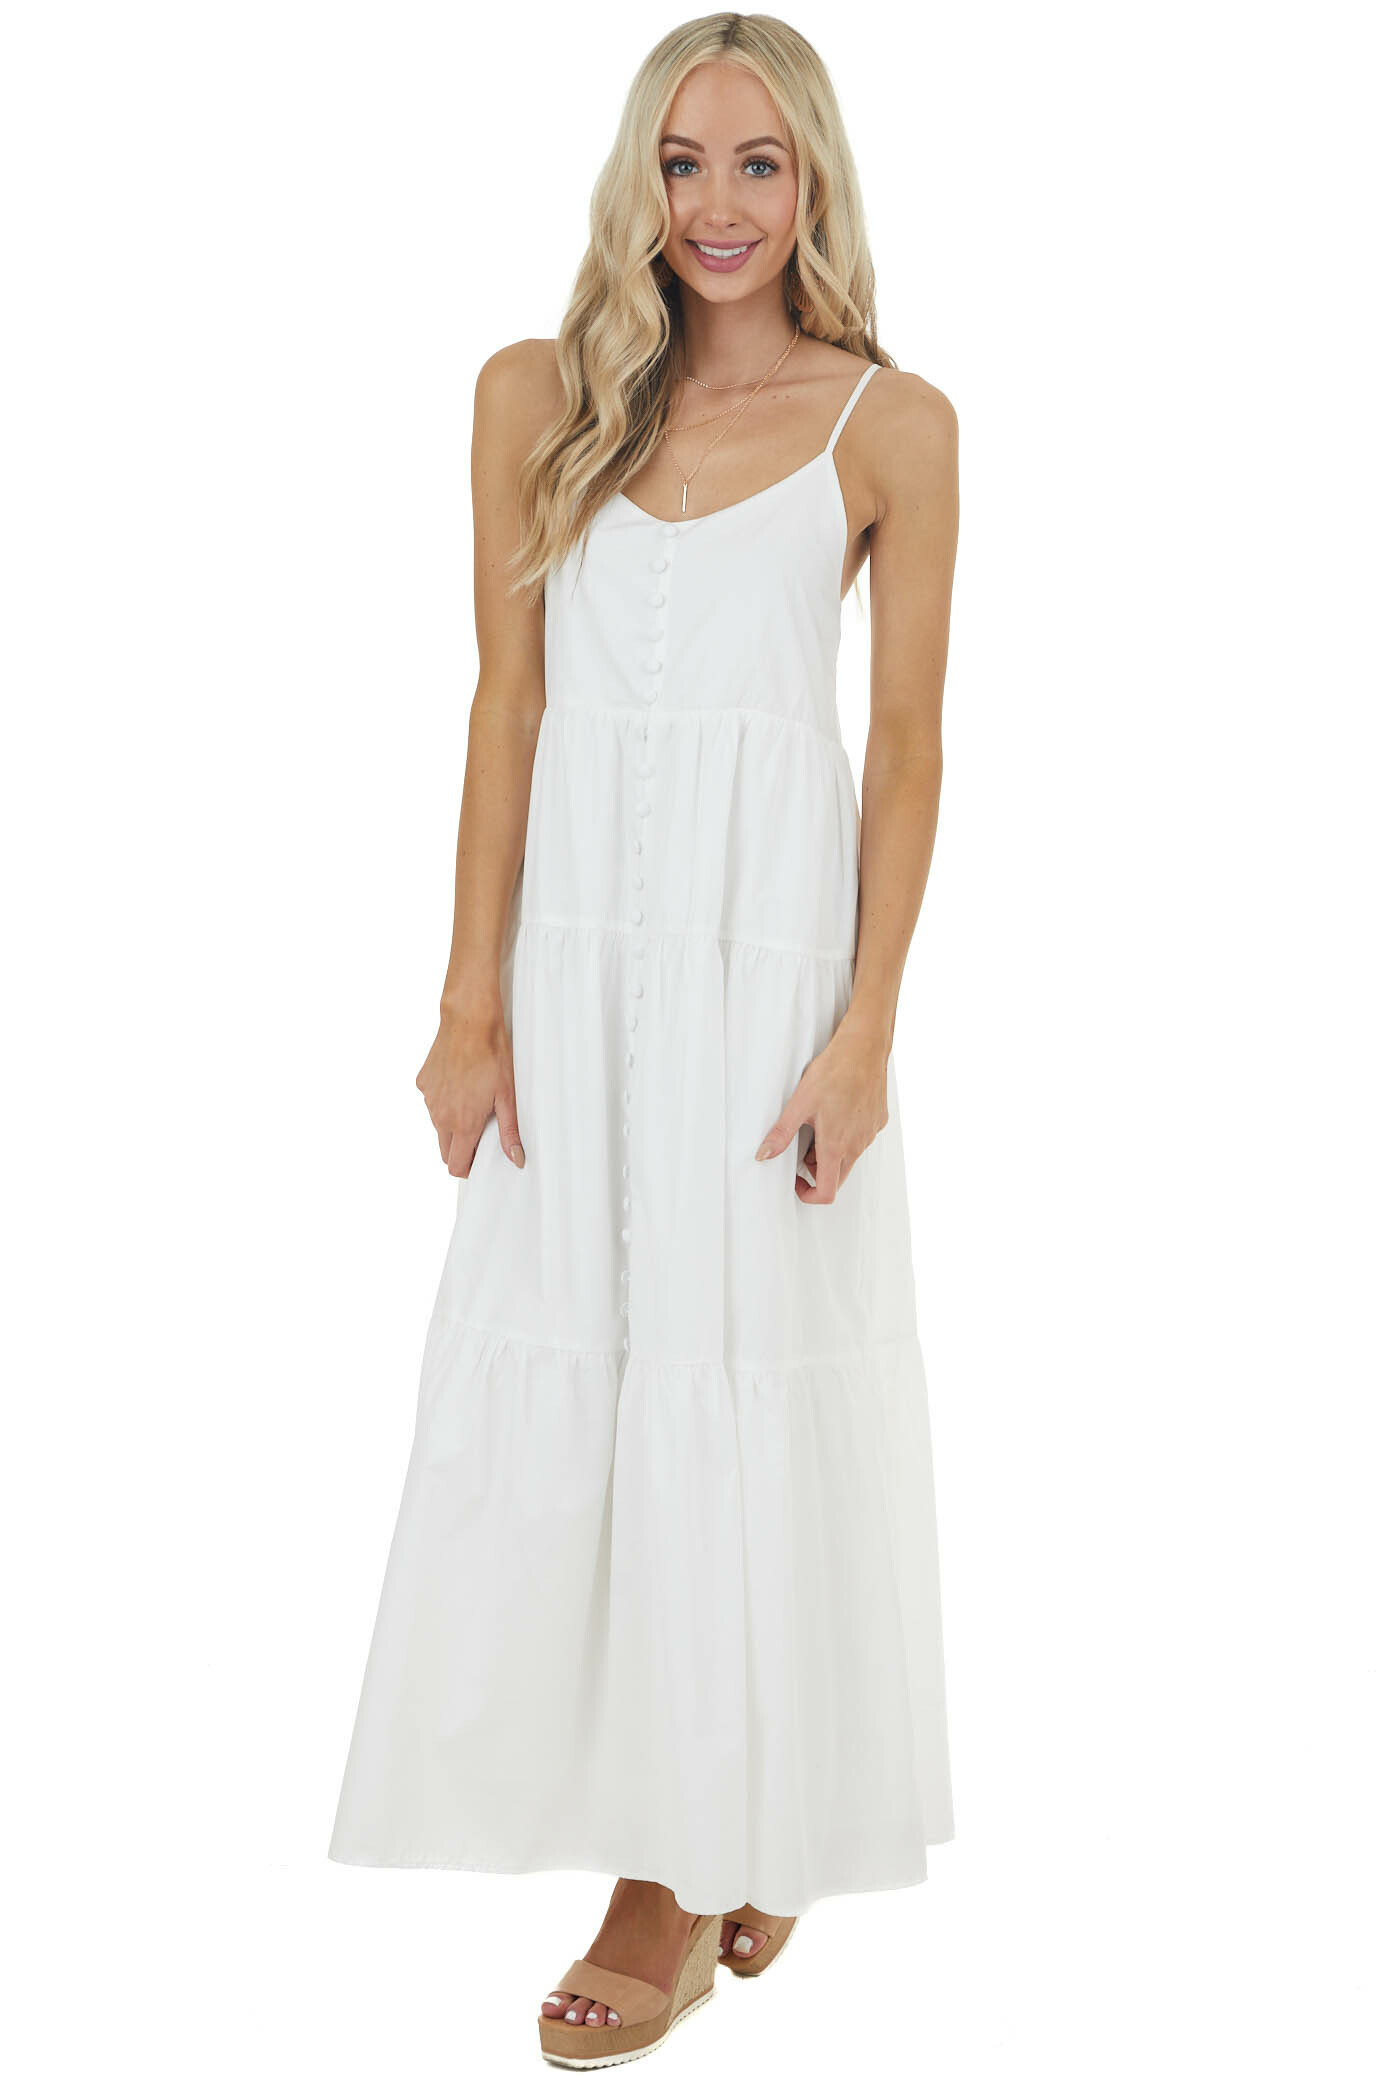 Ivory Sleeveless Tiered Maxi Dress with Button Details